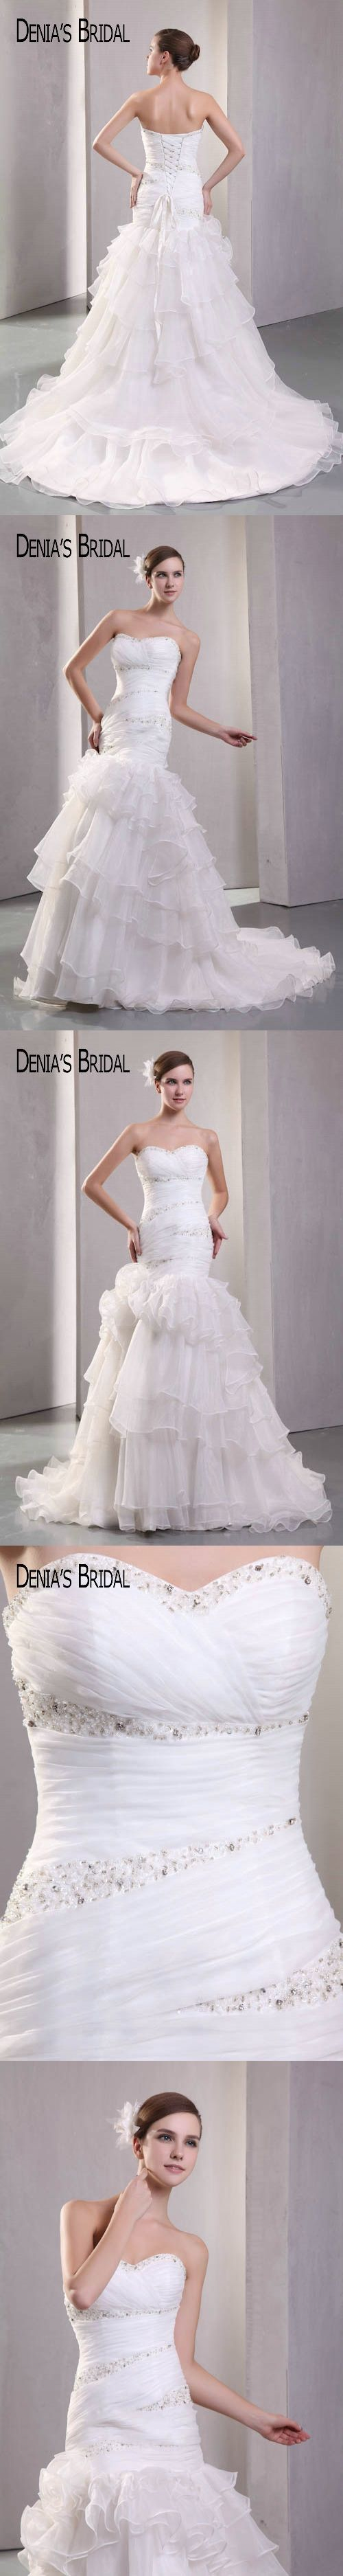 Mermaid ruffle wedding dress  Real Photos Sweetheart Beaded Pleats Mermaid Wedding Dresses Ruffles